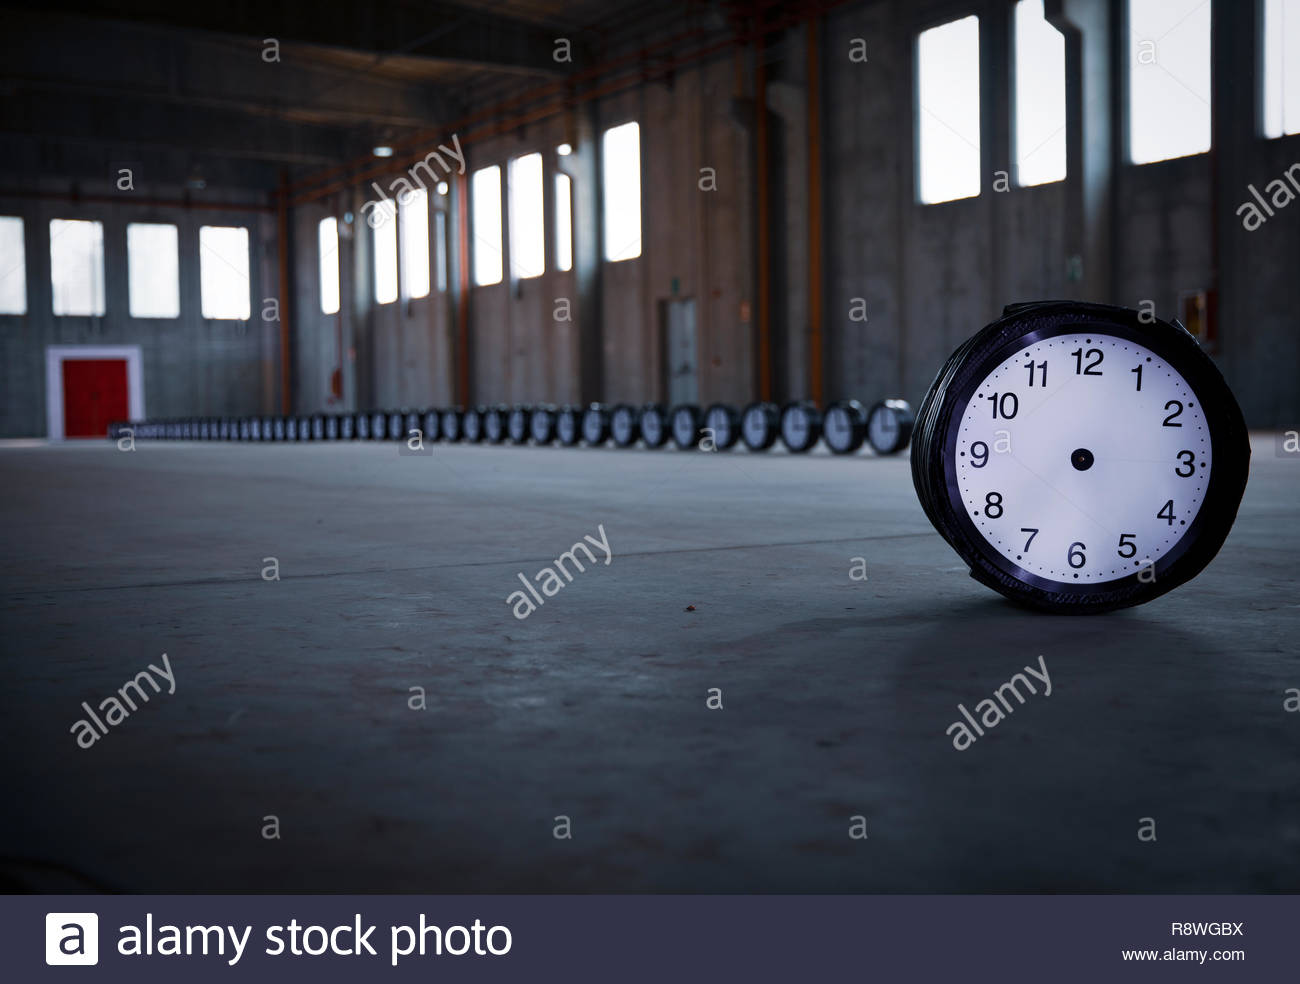 A clock with no hands stands in the foreground, on the right, with 50 clocks behind, settled in a row pointing to a red door in an empty factory. - Stock Image